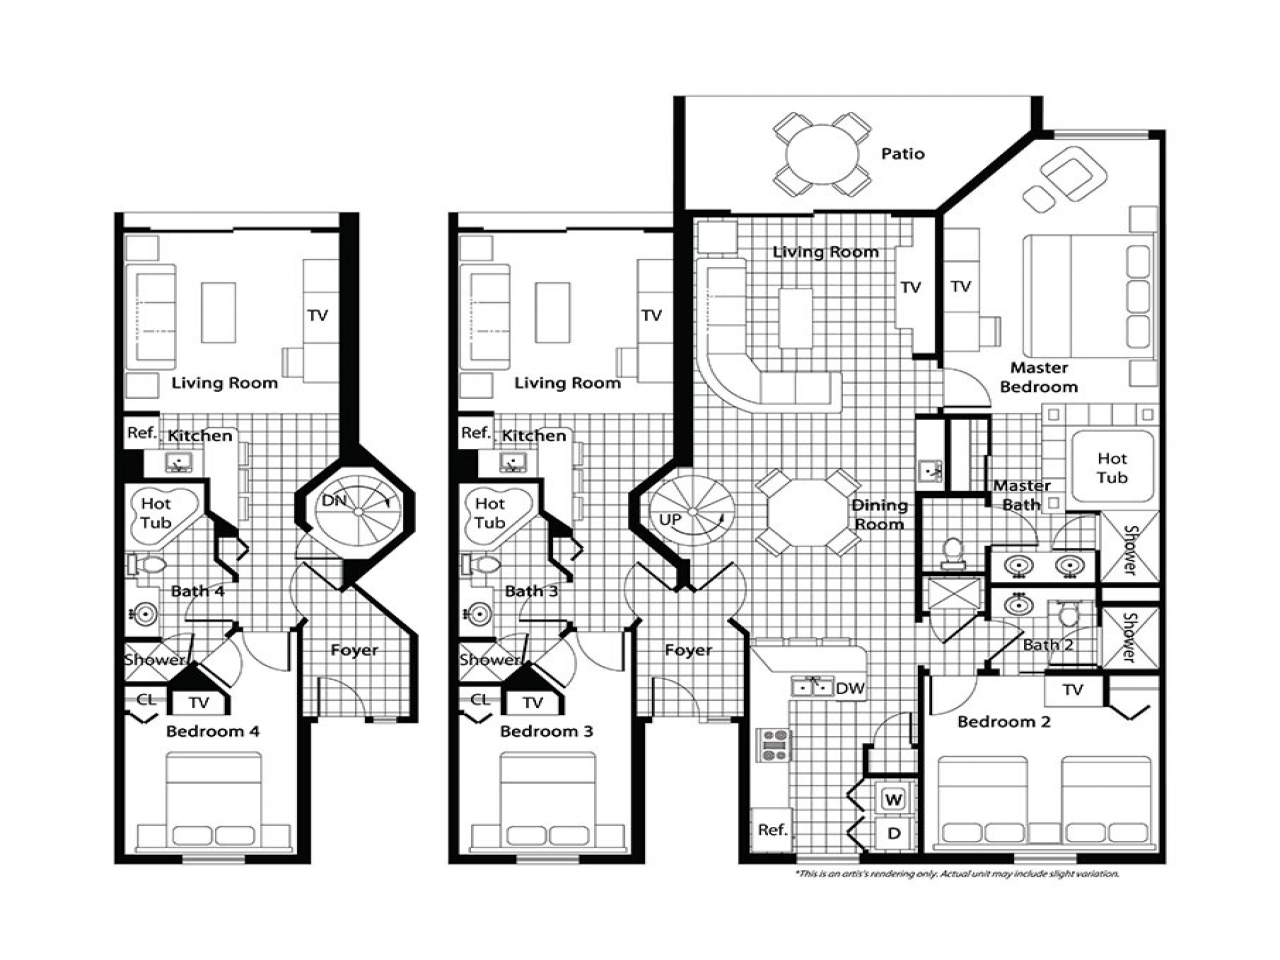 2 bedroom villa floor plans 28 images villa second for Bedroom floor letra